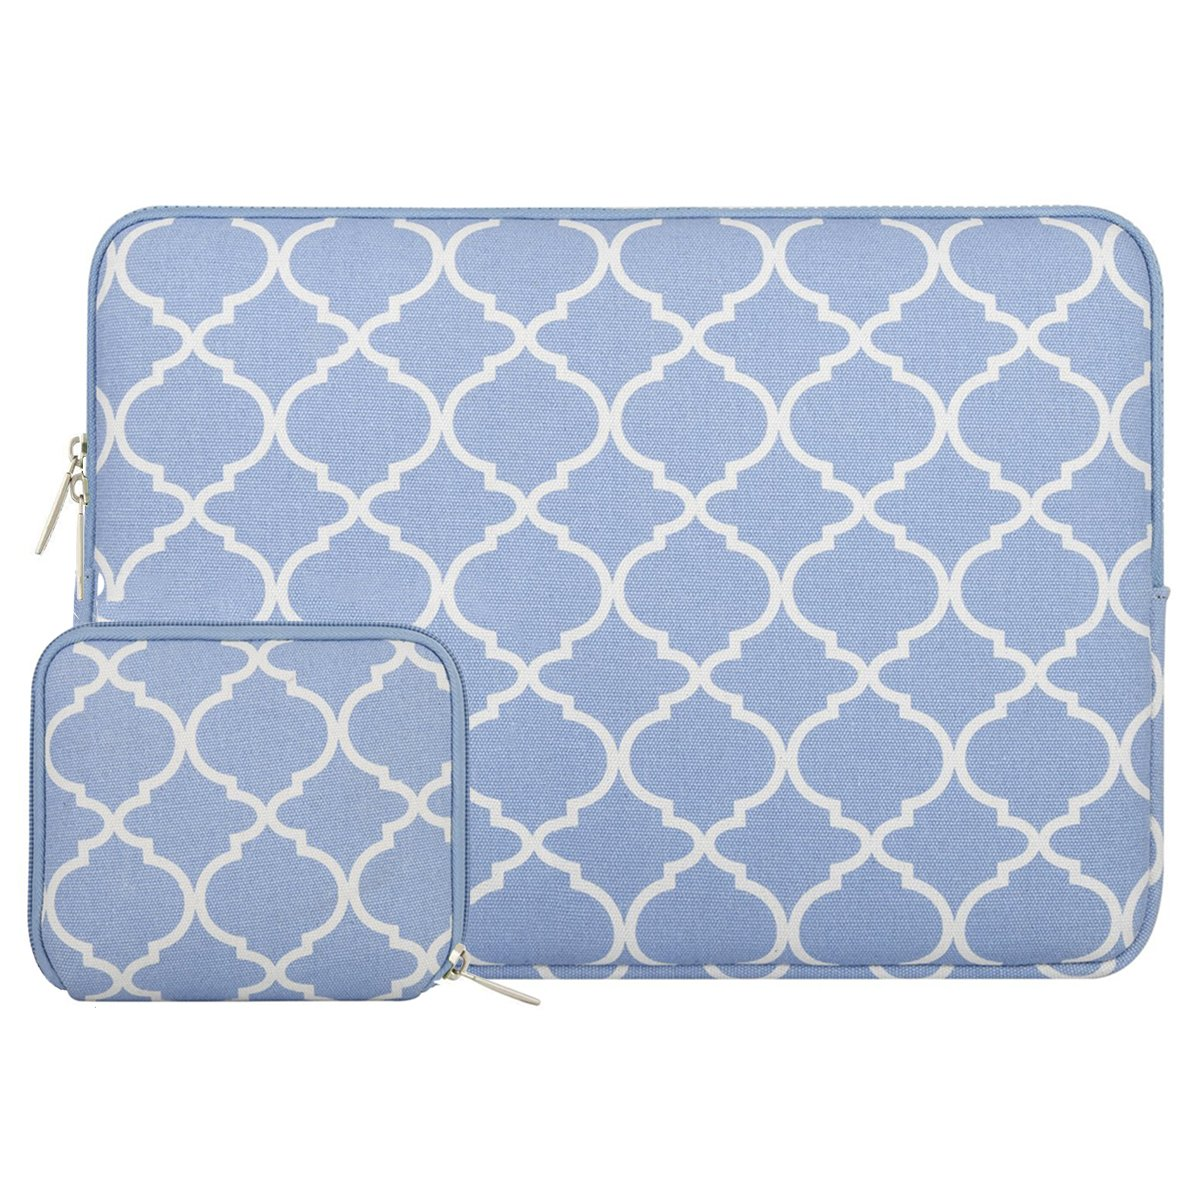 MOSISO Laptop Sleeve Compatible with 13-13.3 inch MacBook Pro, MacBook Air, Notebook Computer, Canvas Quatrefoil Bag Cover with Small Case, Serenity Blue